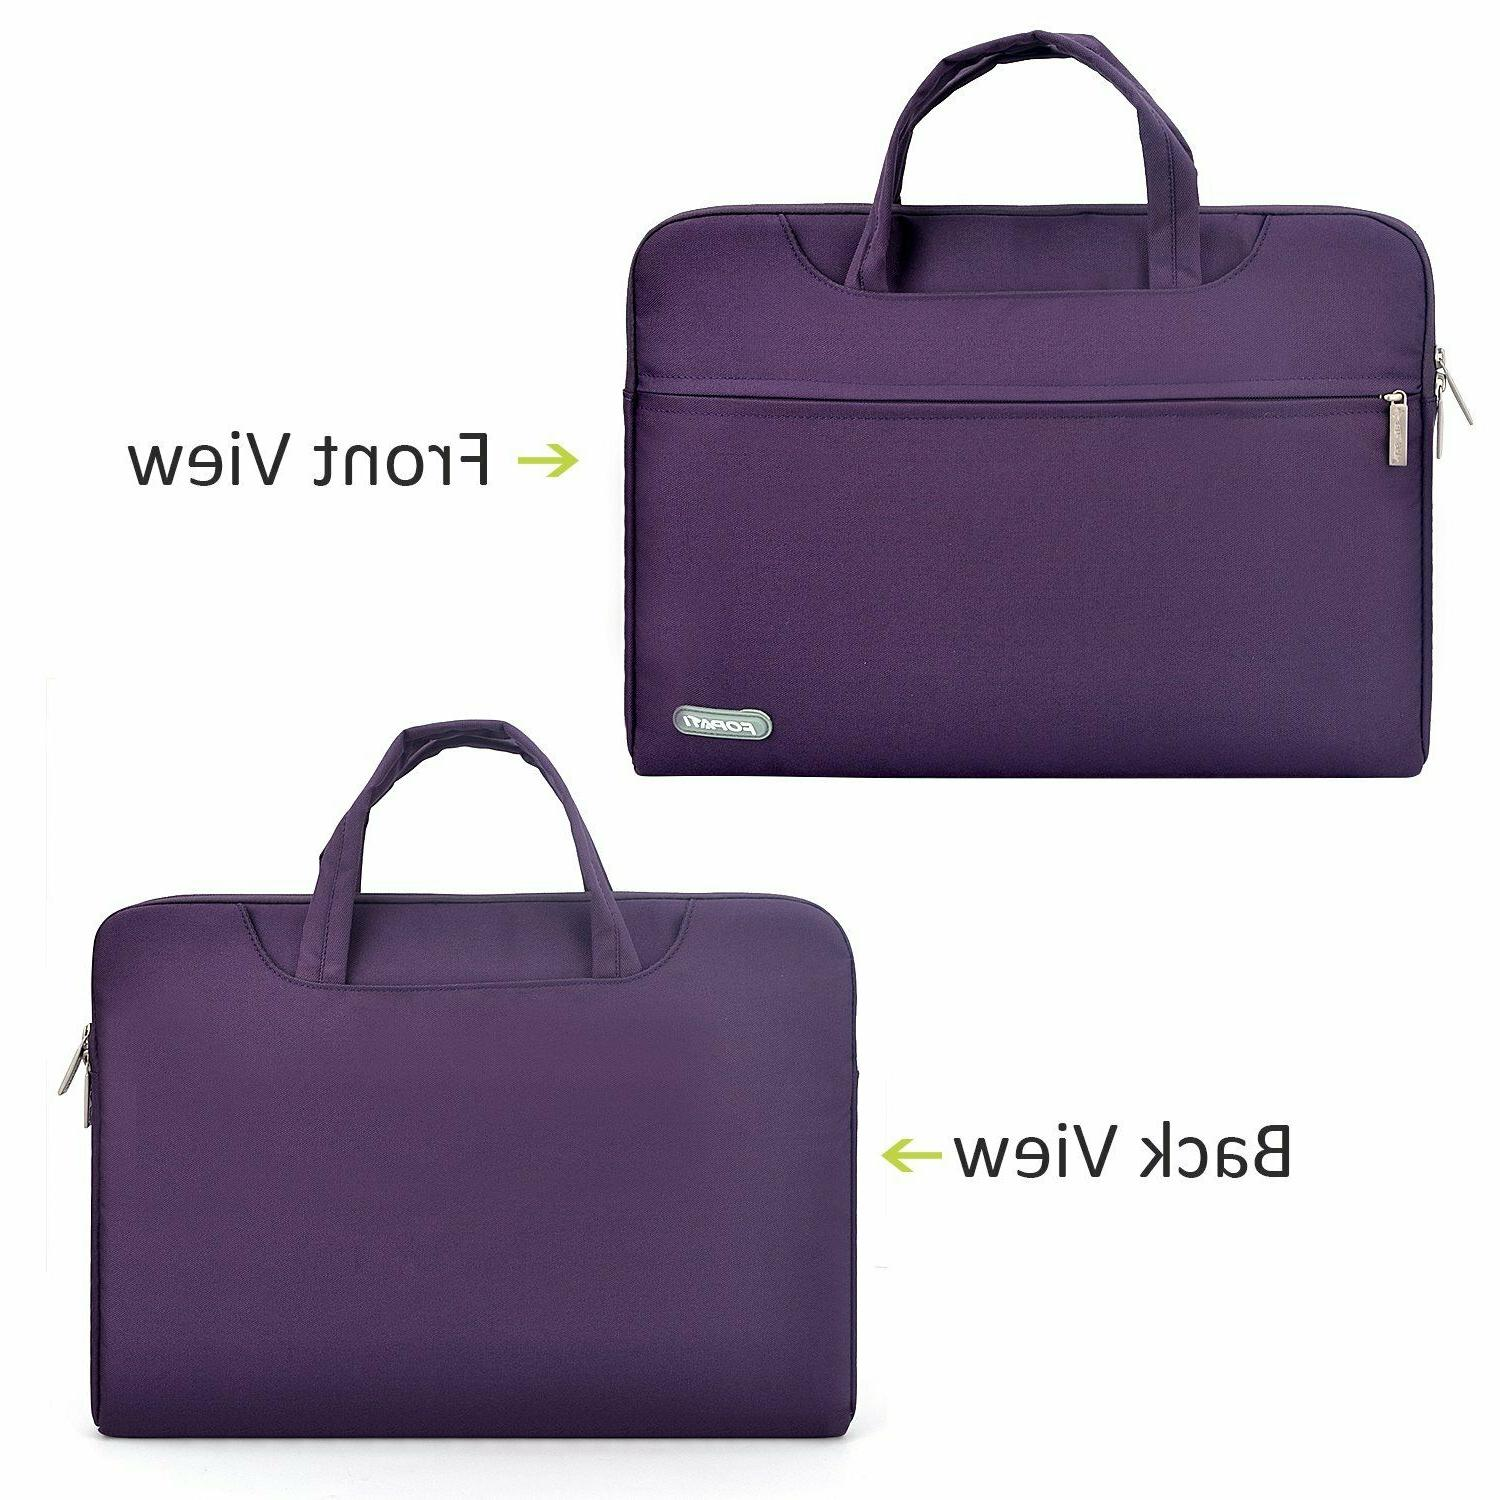 Traveling Office Bag For Ladies Case Cabin Crew Luggage